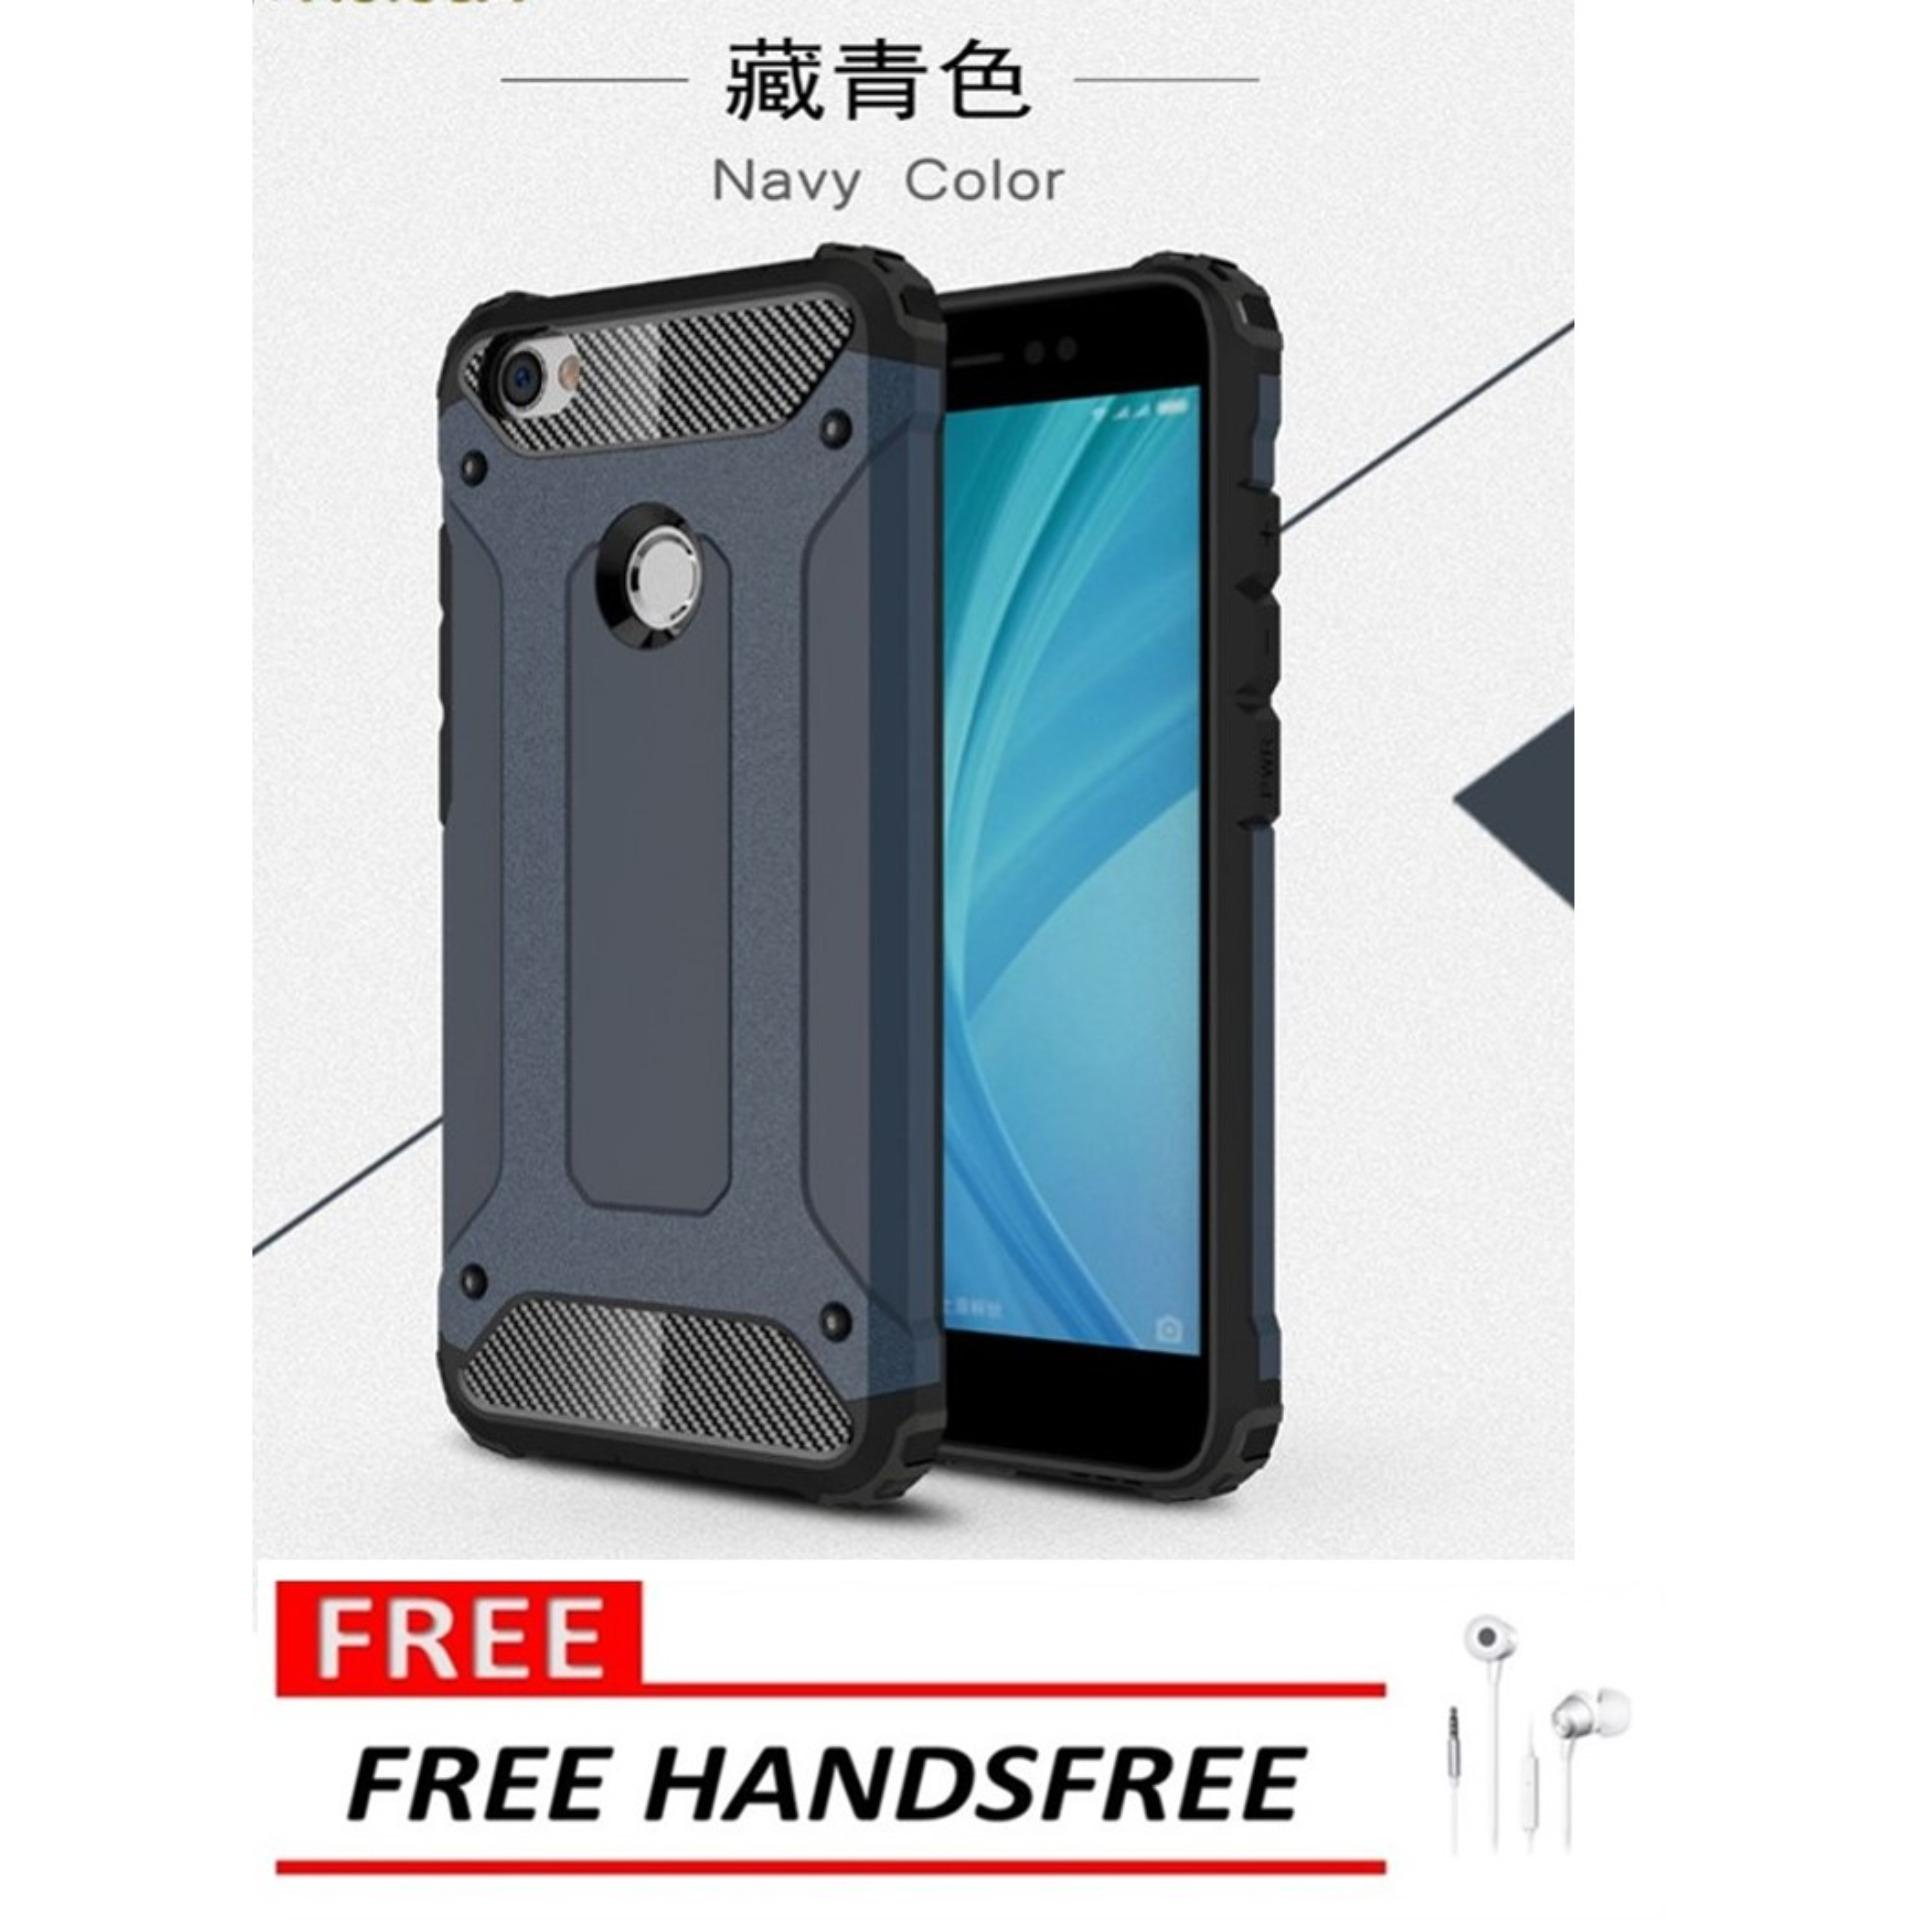 Case Hard Cover Robot Shockproof Armor For Xiaomi Redmi Note 5A – Blue FREE Handsfree